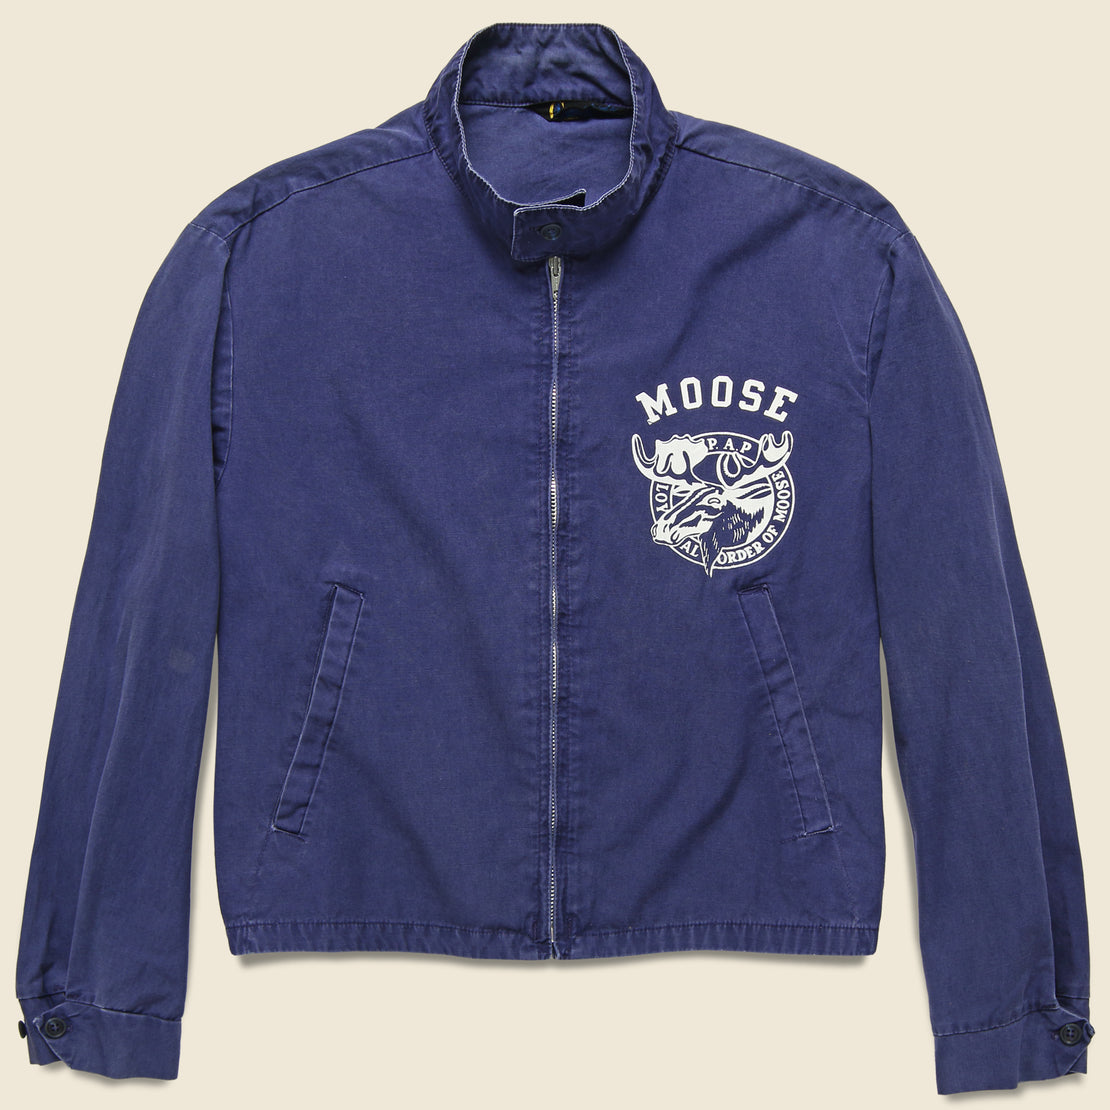 Vintage Champion Moose Lodge Jacket - Navy